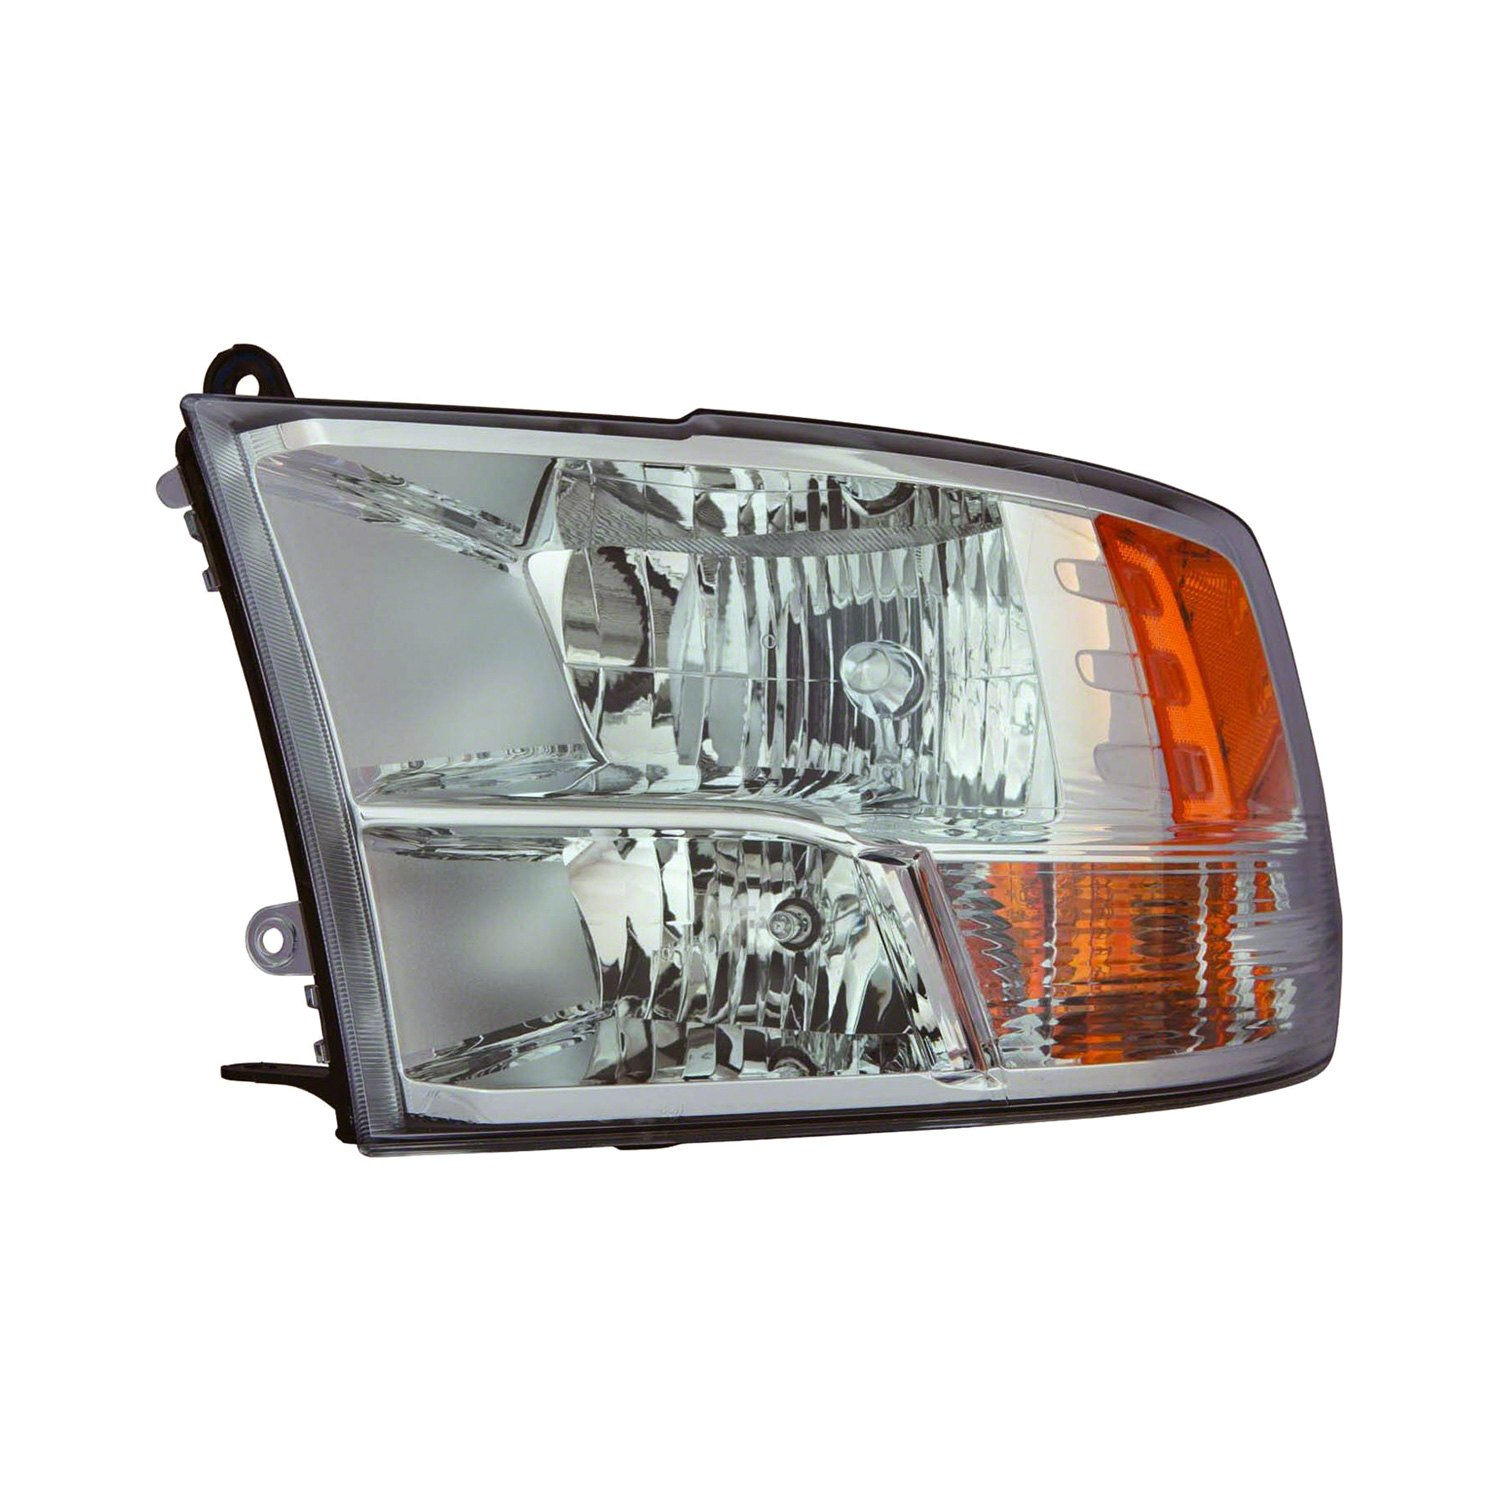 buy cheap Replace® CH2502242N - Driver Side Replacement Headlight for 2015 RAM 1500 TRUCK Ebay & Amazon